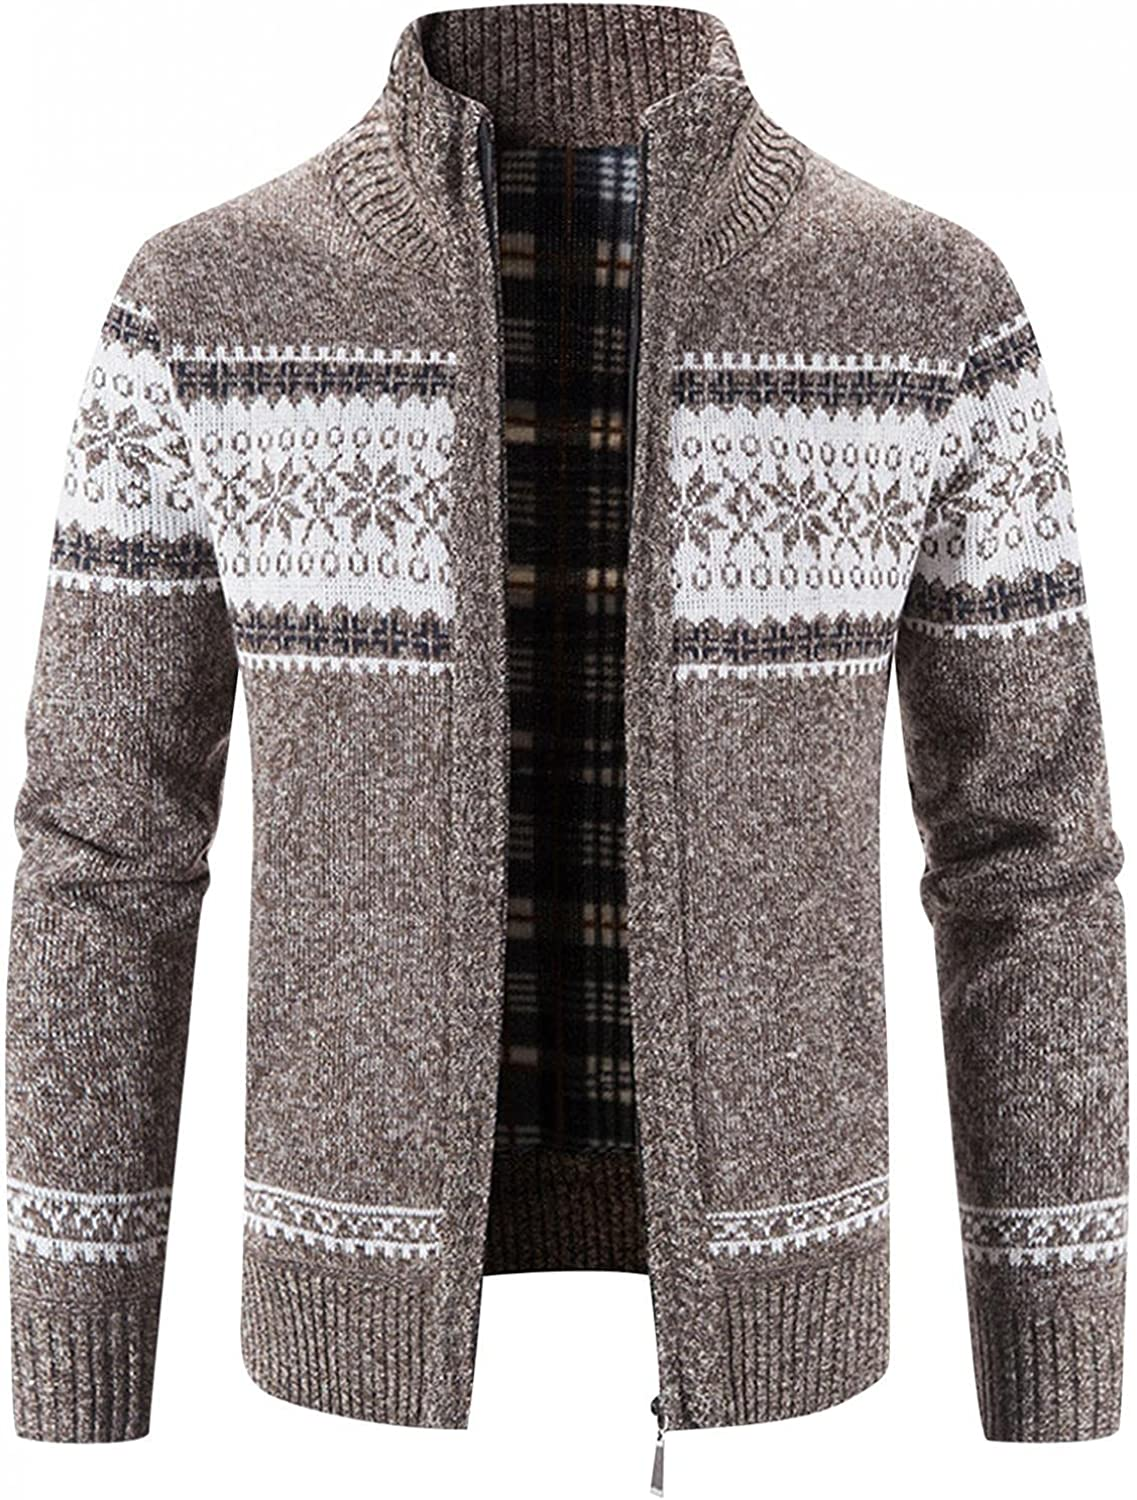 Huangse Mens Knit Cardigan Sweater Patterned Cable Knit Zip Up Closure Stand Collar Winter Jacket Outerwear